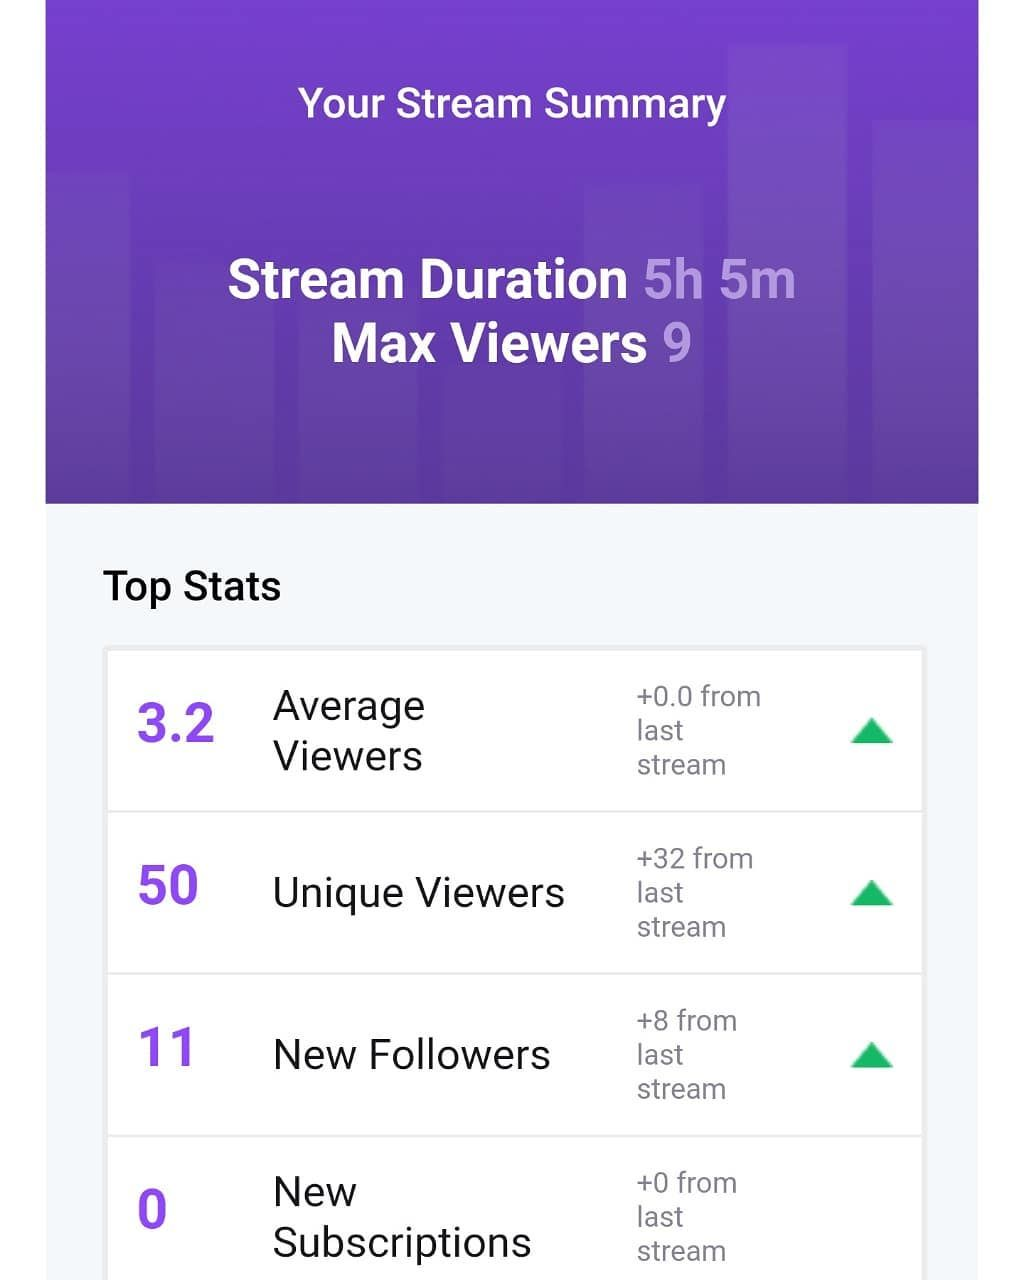 Tonight's stream was the best I've had so far! So much